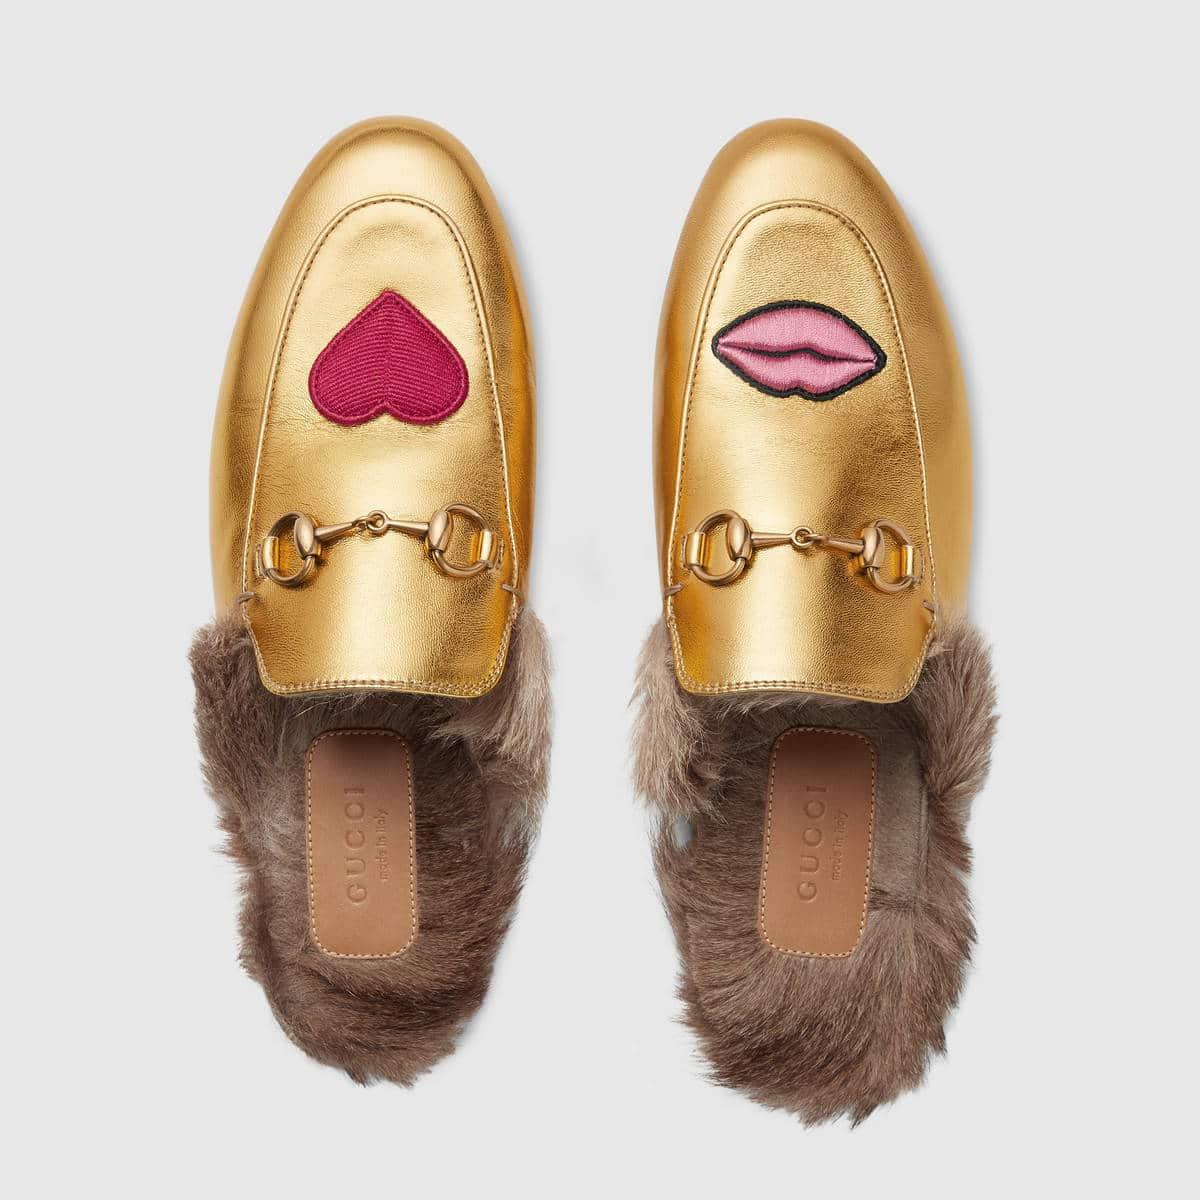 773e724d050 Gucci Metallic Gold Princetown Heart Mouth Embroidered Slipper